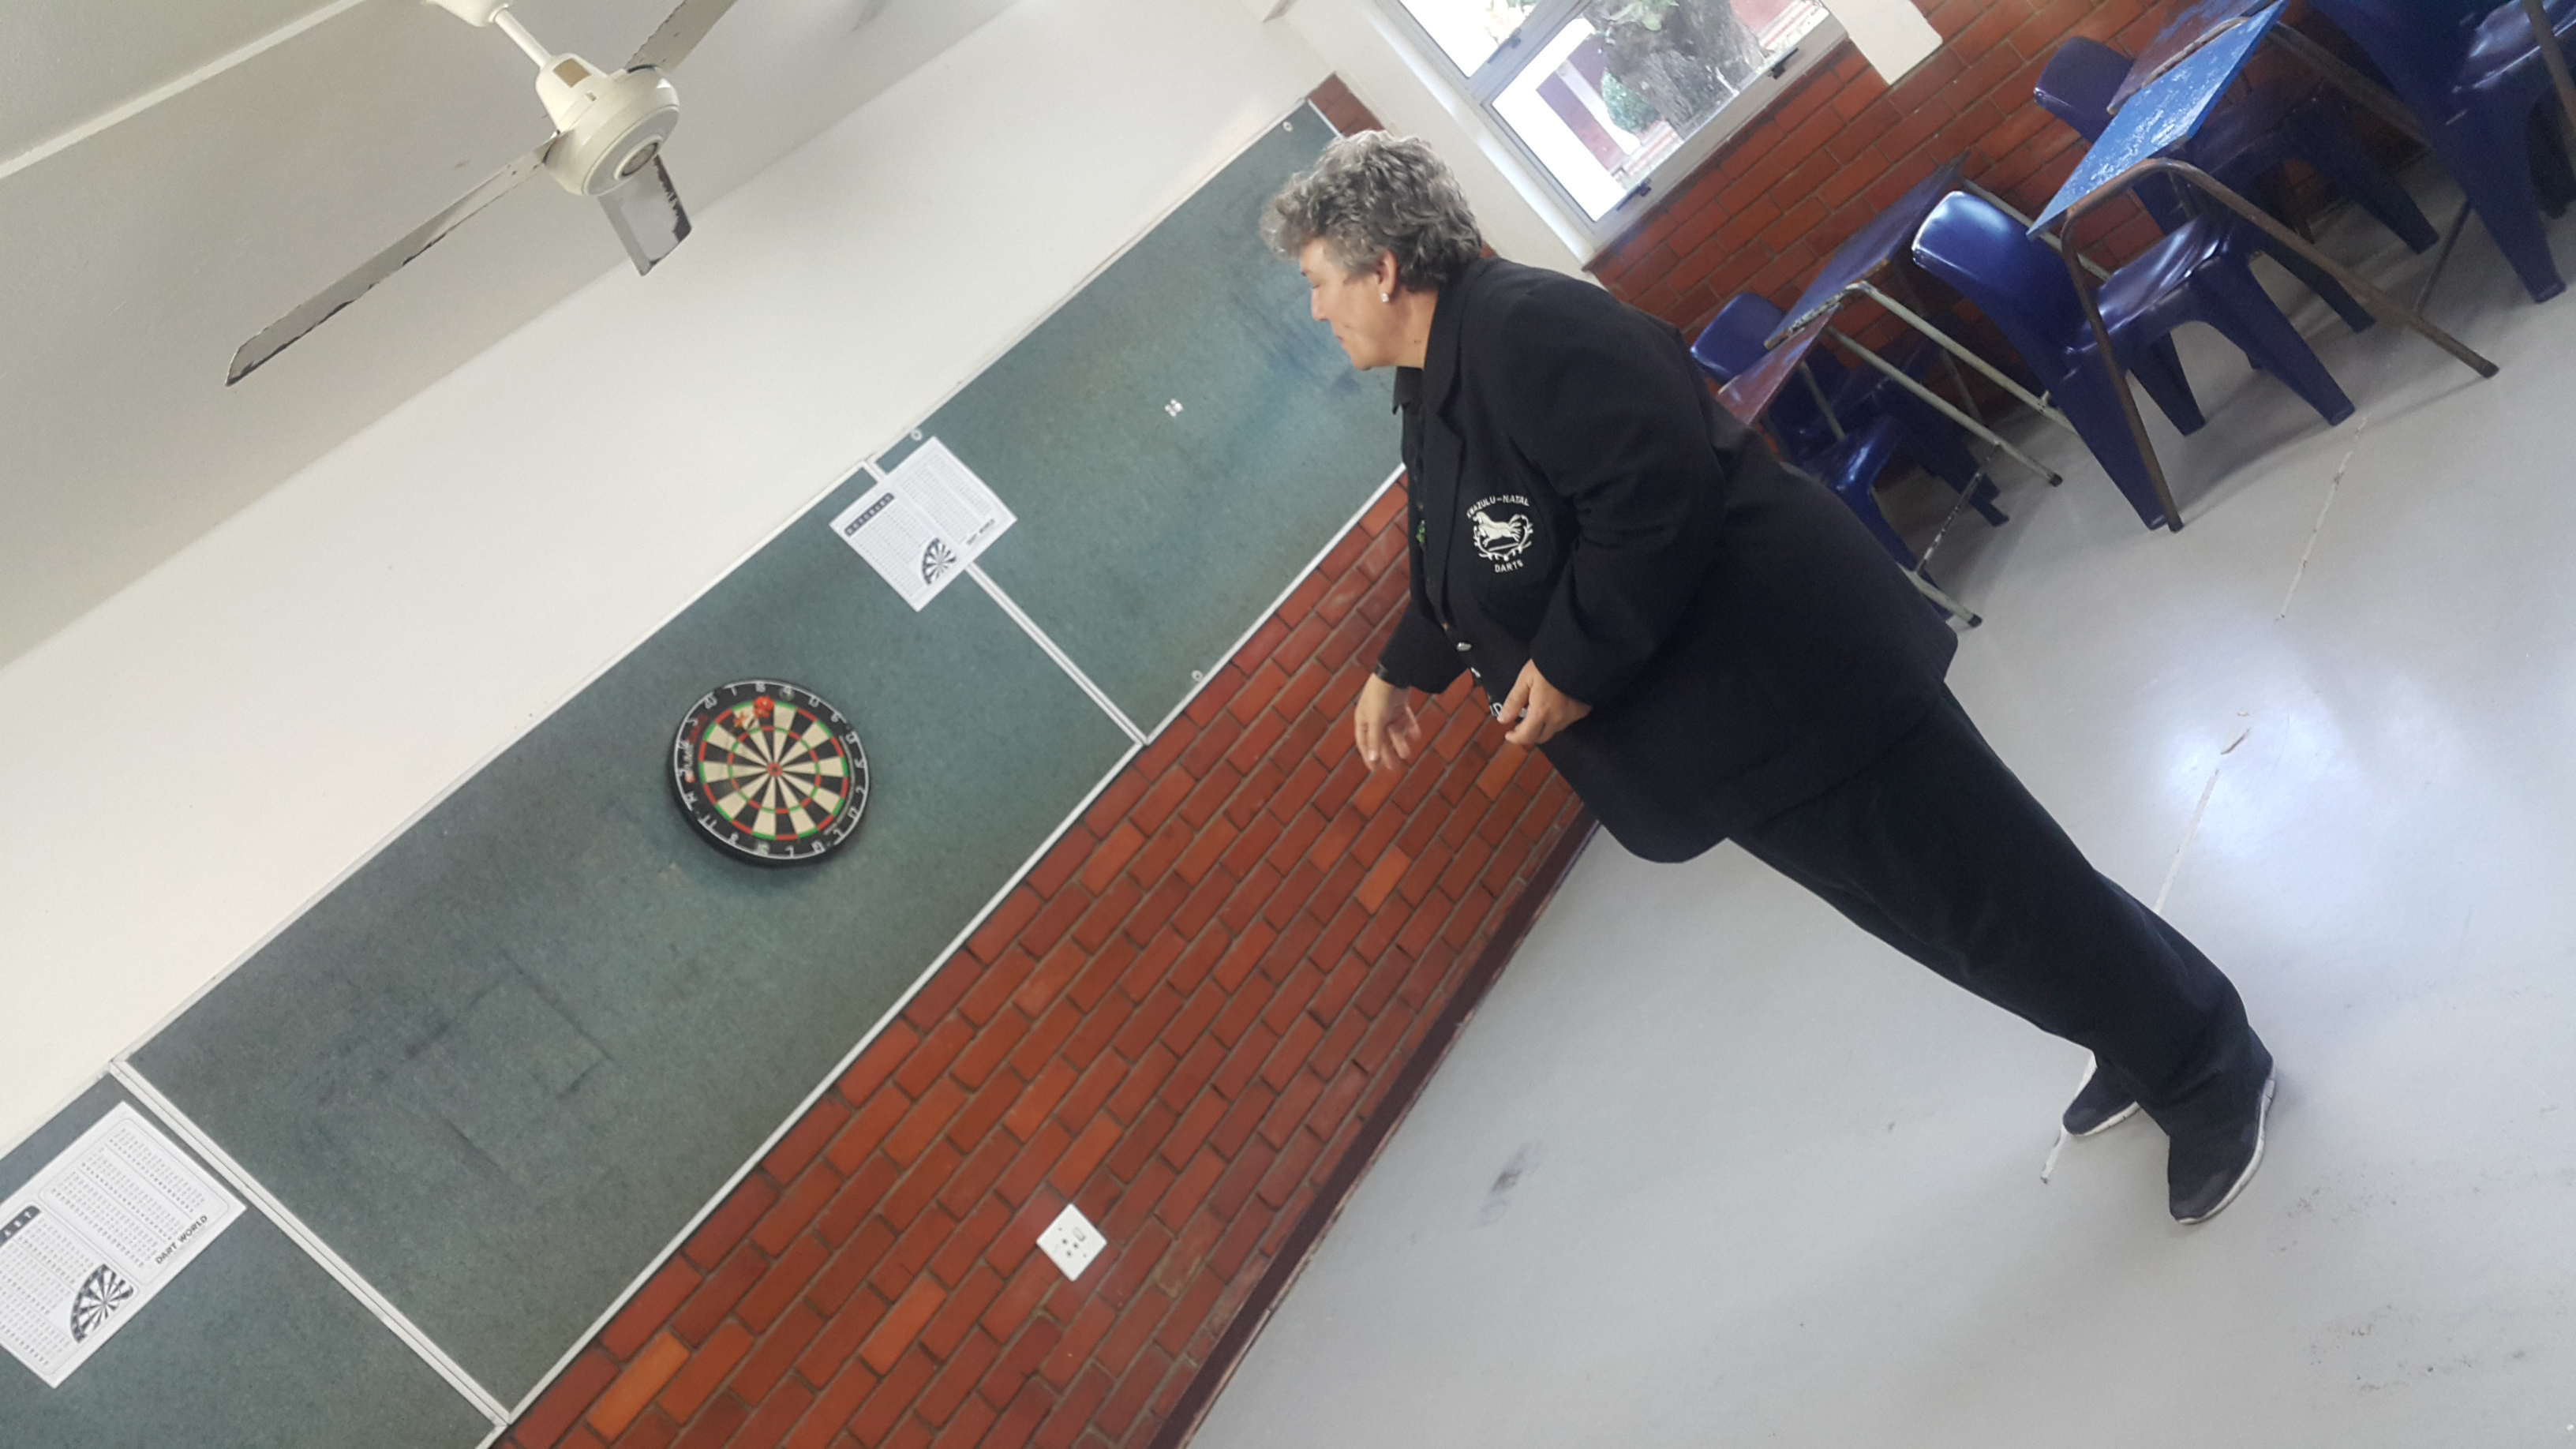 Ms Bisschoff Selected for KZN Darts!